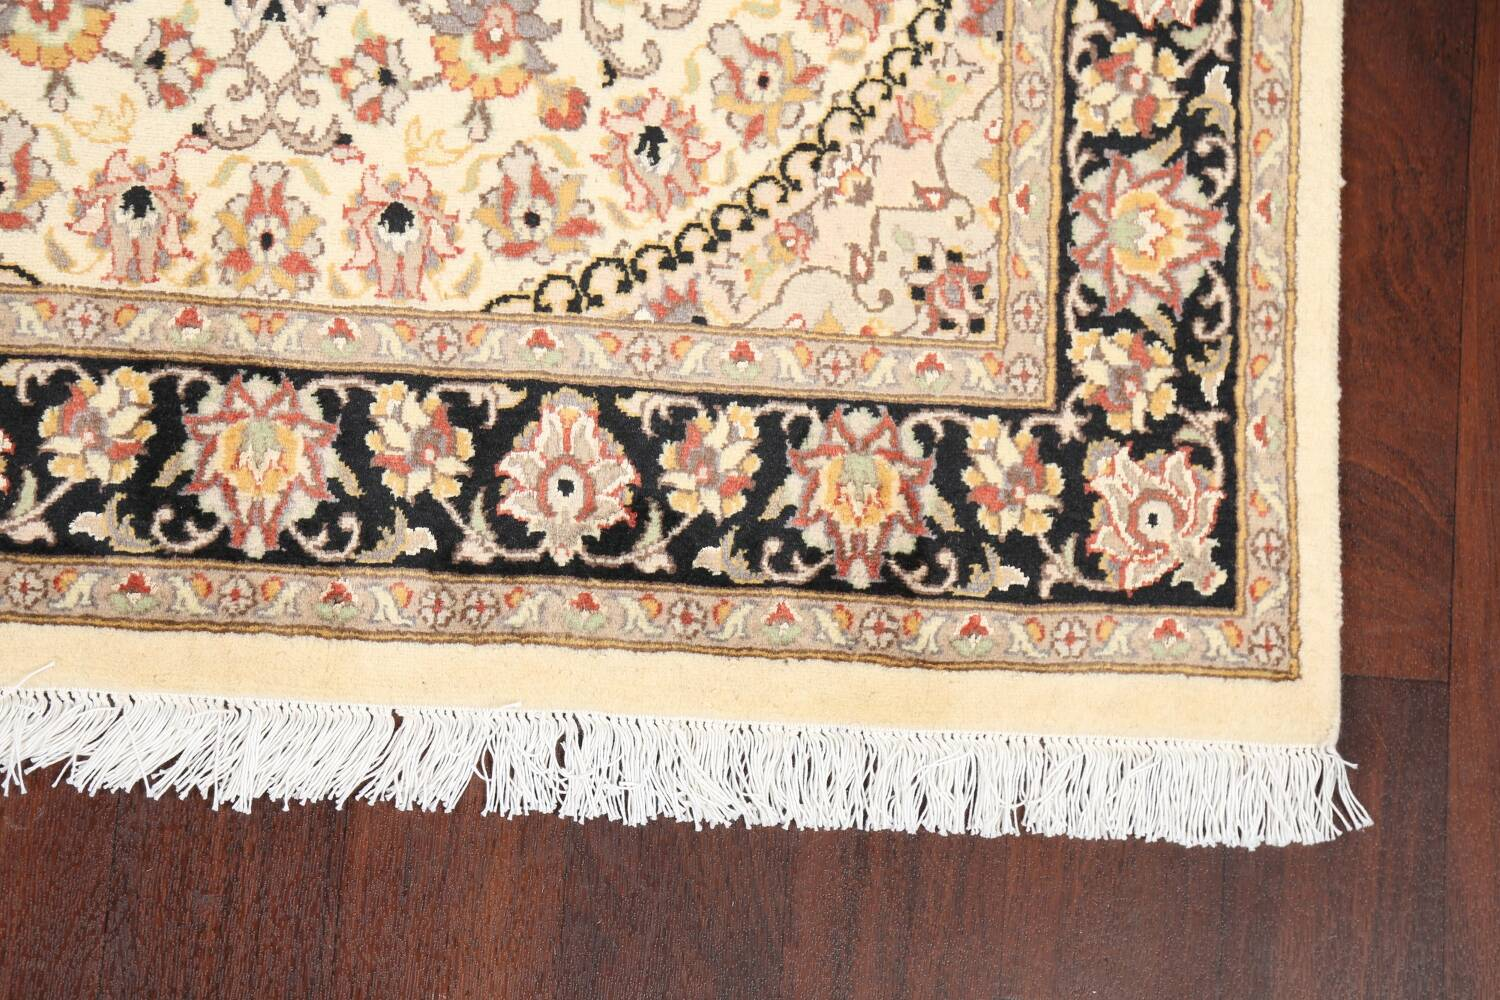 Vegetable Dye Floral Tabriz Oriental Area Rug 4x6 image 6